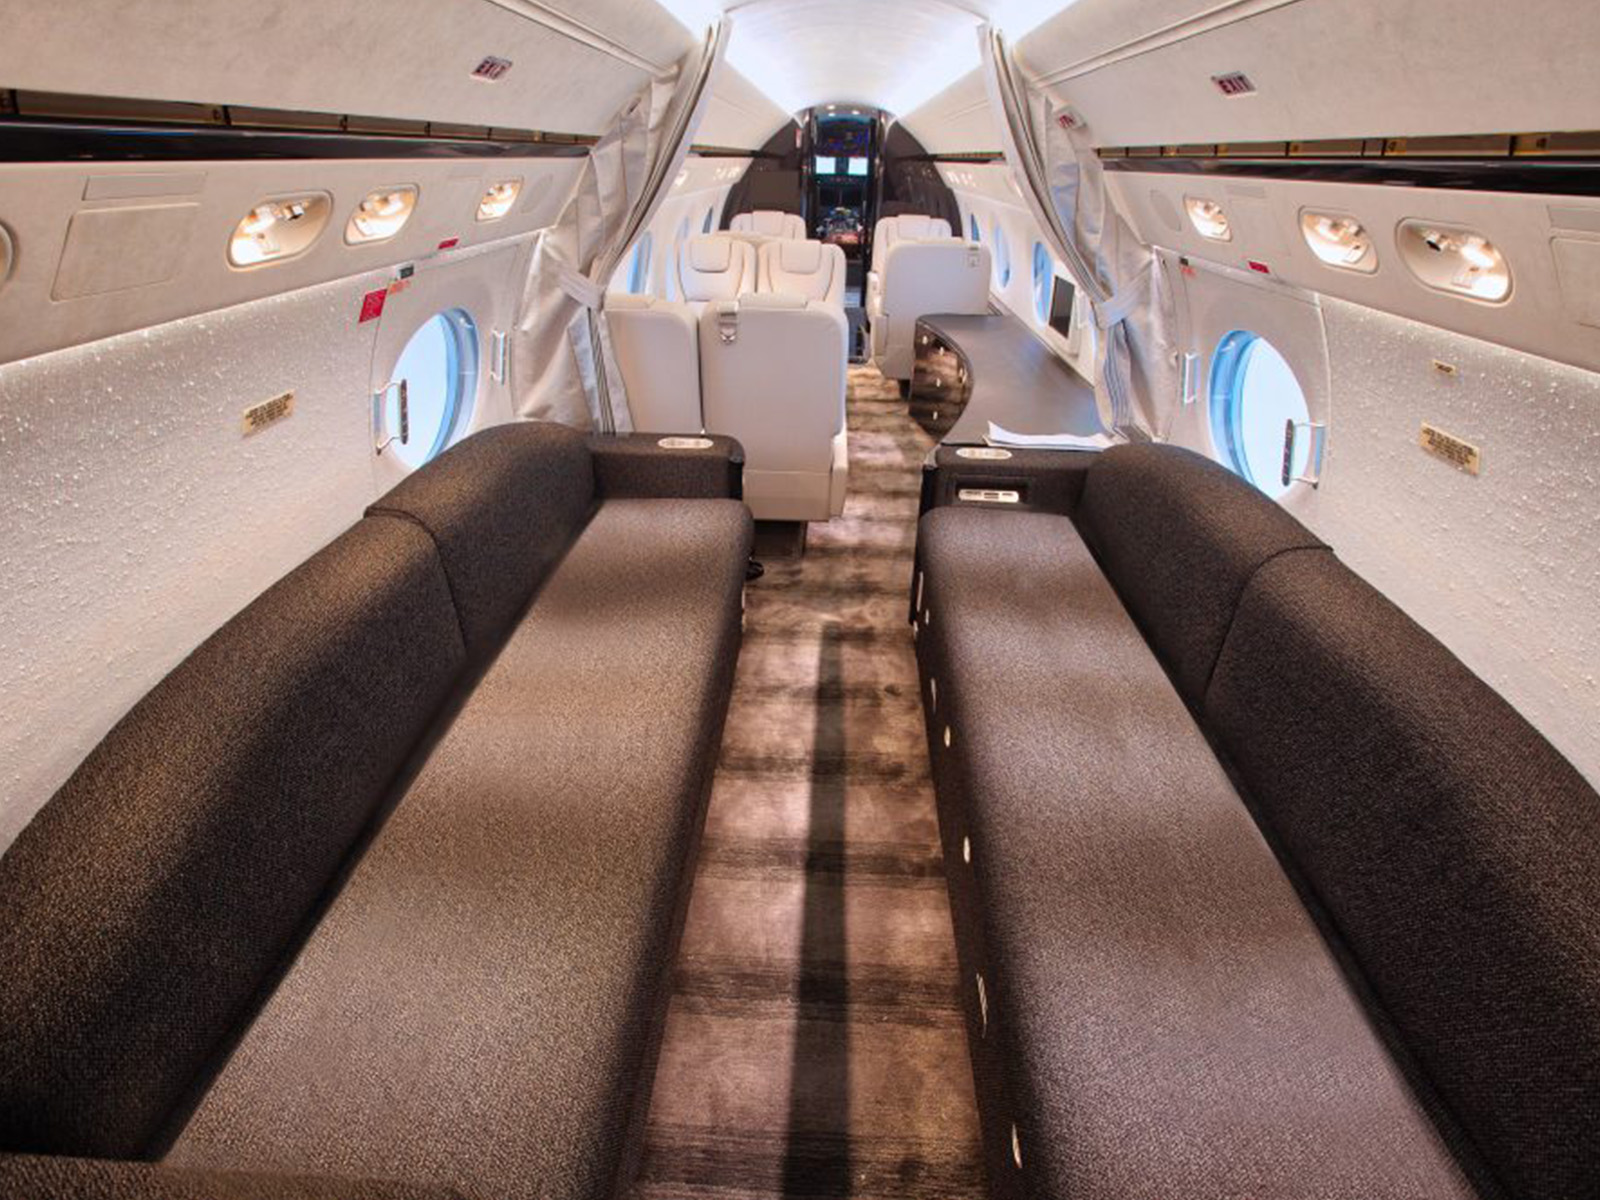 full aircraft cabin with sofas